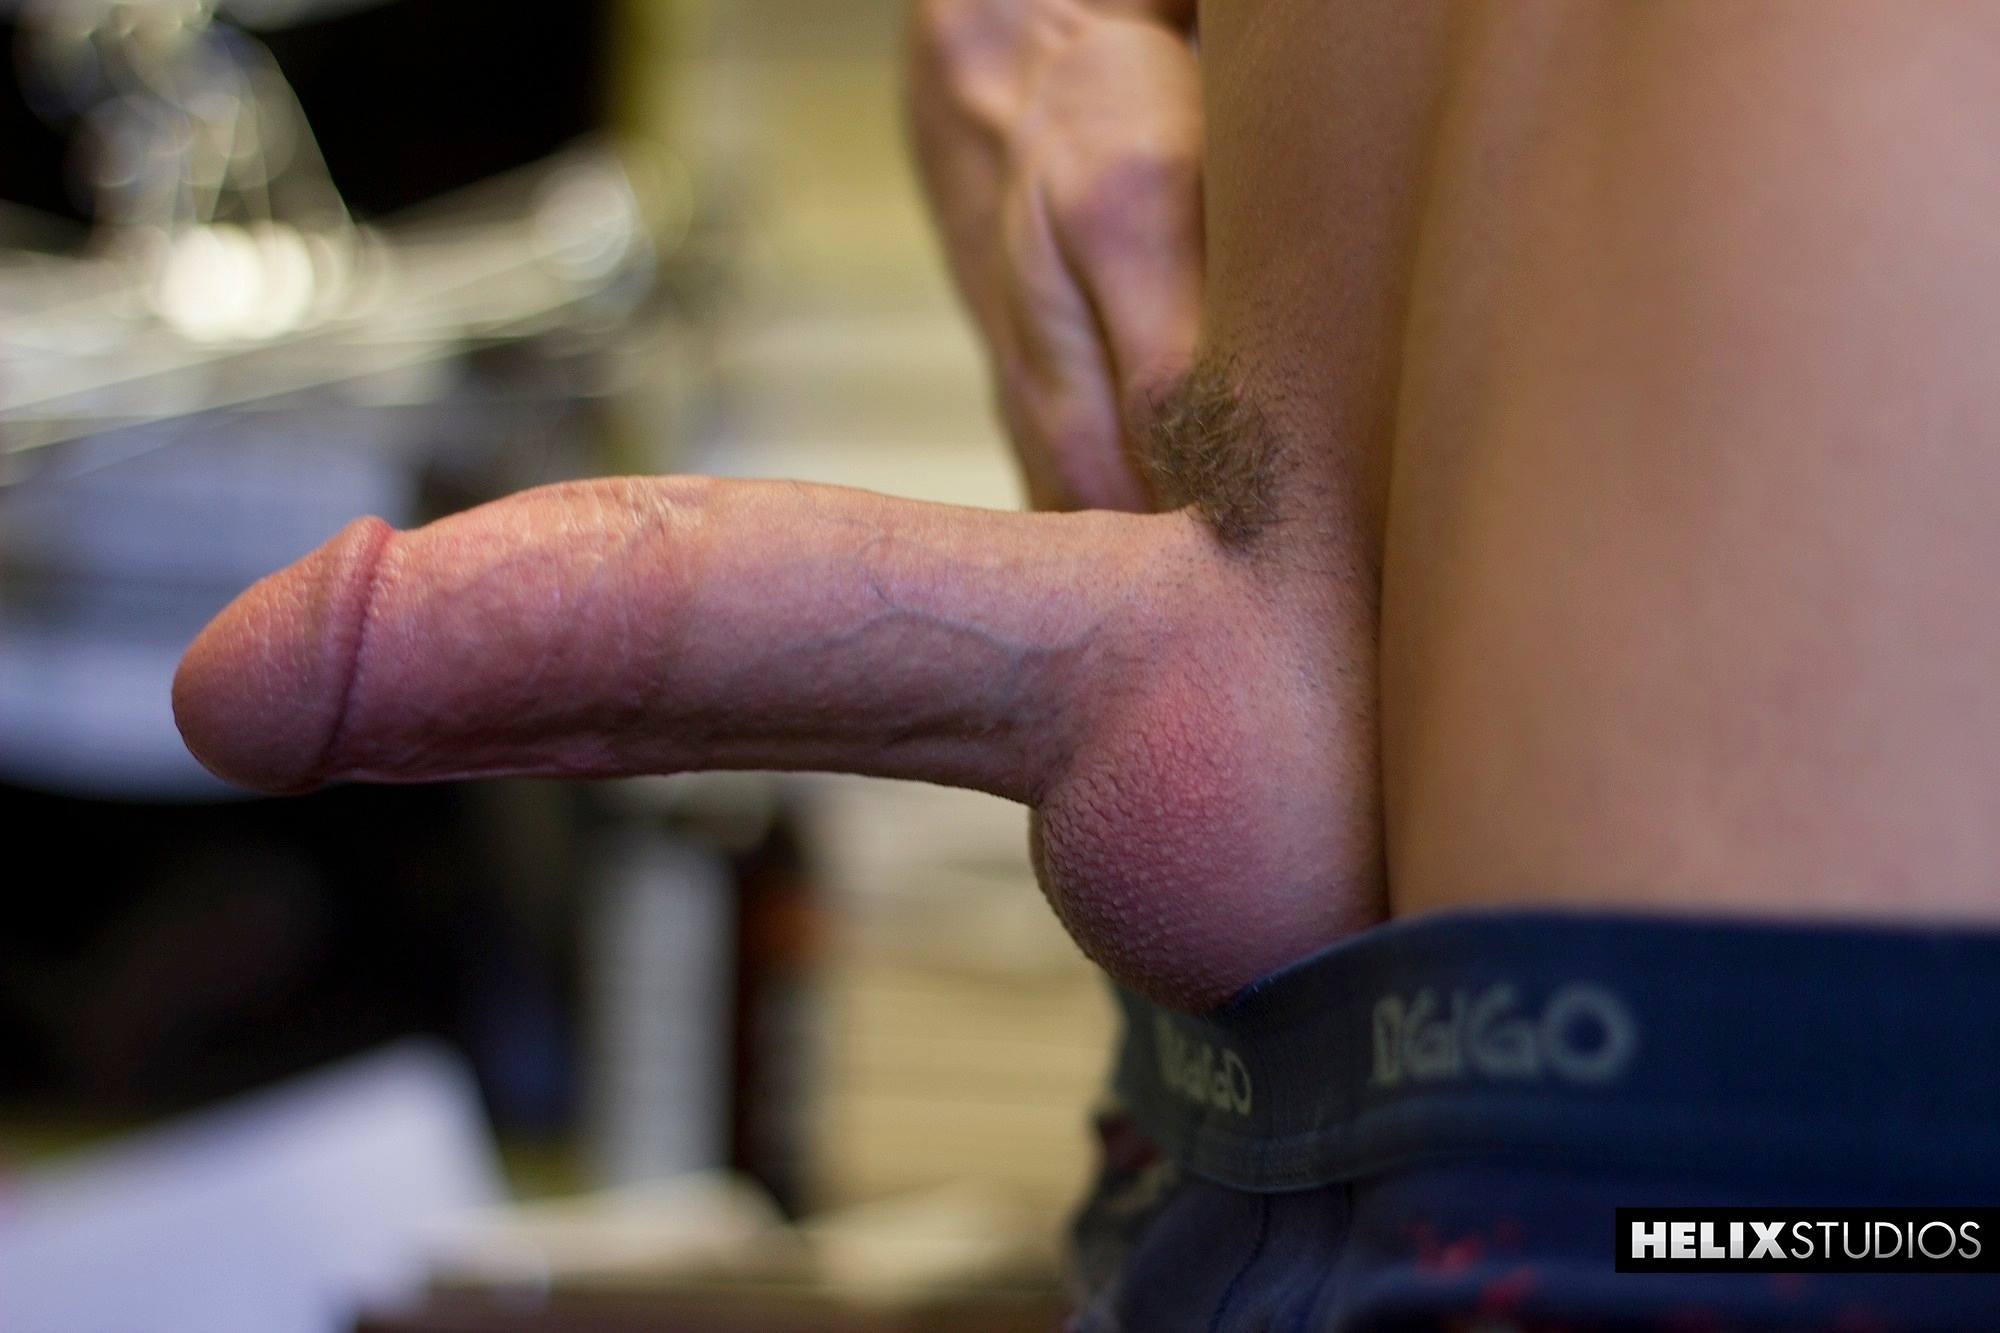 Helix-Studios-Christian-Collins-Twink-Redhead-bigcock-06 Red Headed Amateur Twink With Huge Cock Rubs One Out